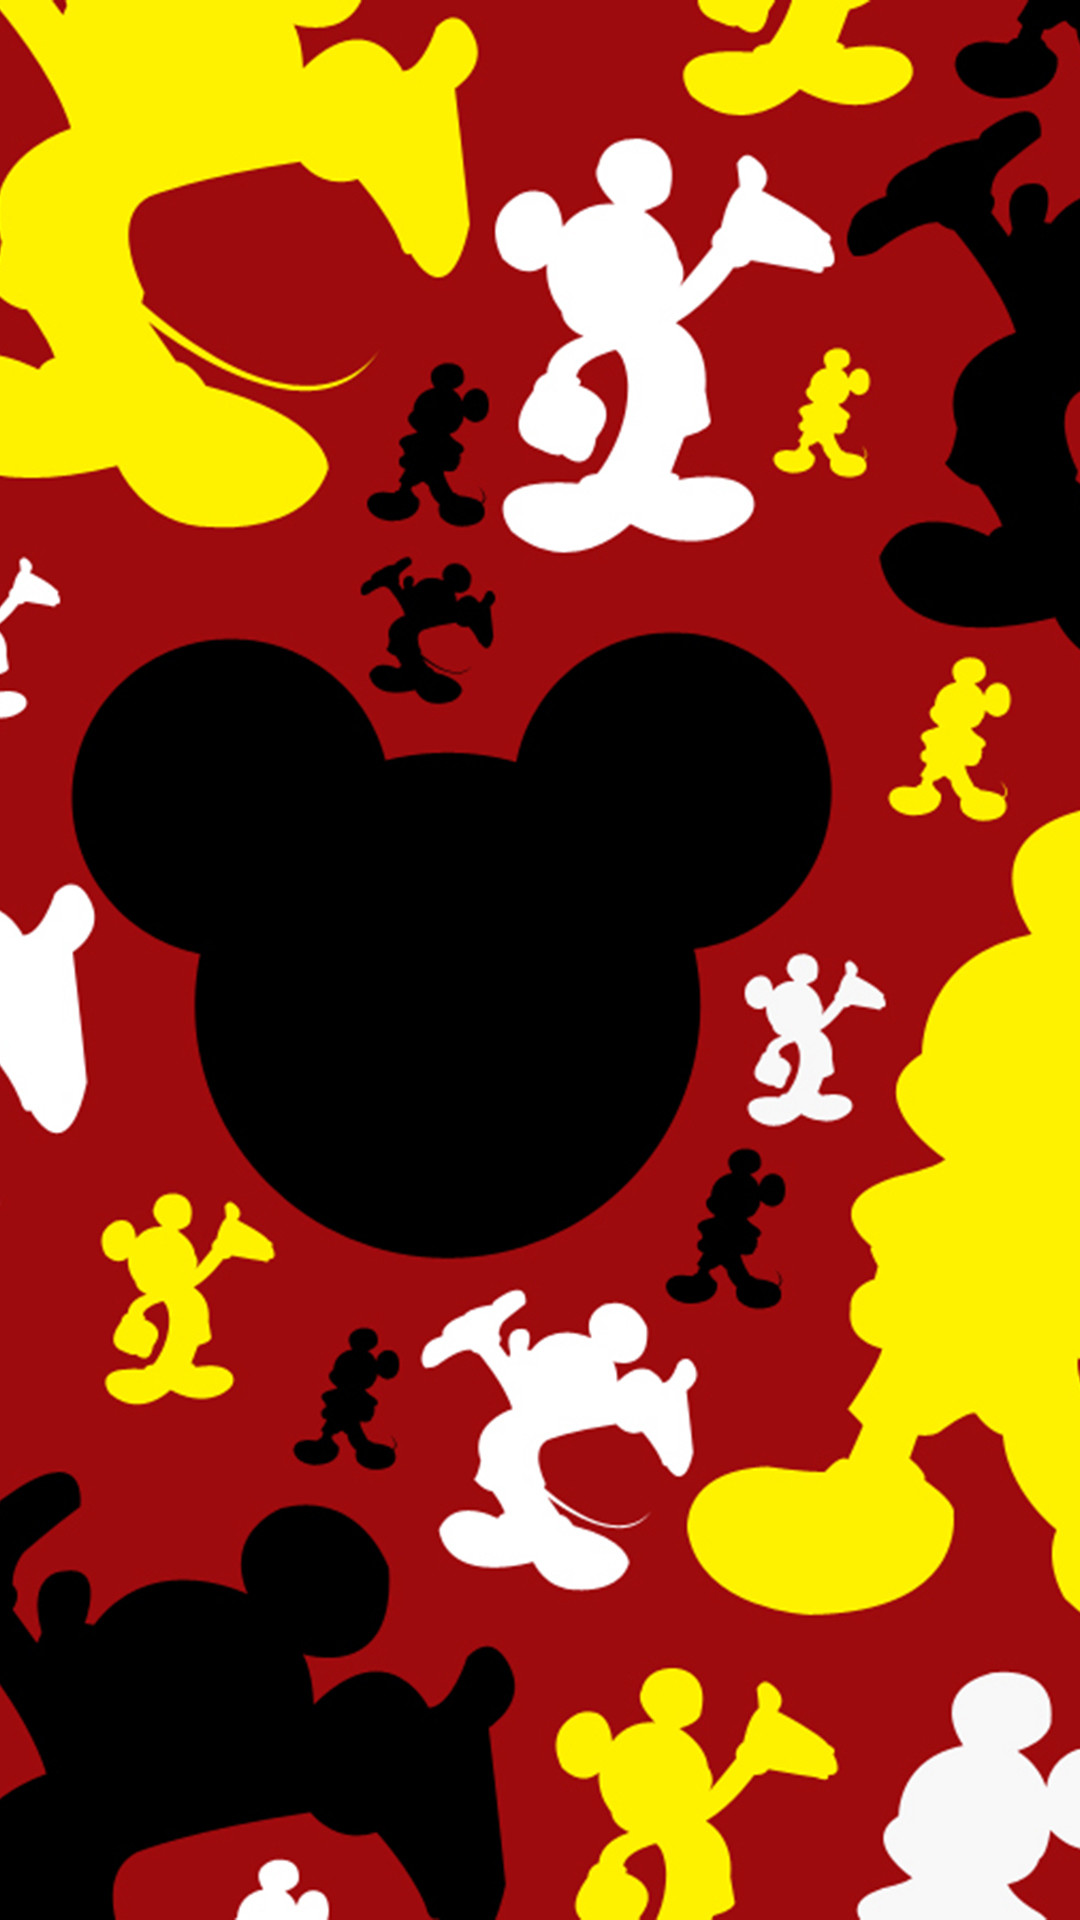 Wallpaper iphone minnie mouse - 1920x1080 Wdcc The Prince And The Pauper Mickey Mouse Long Live The King